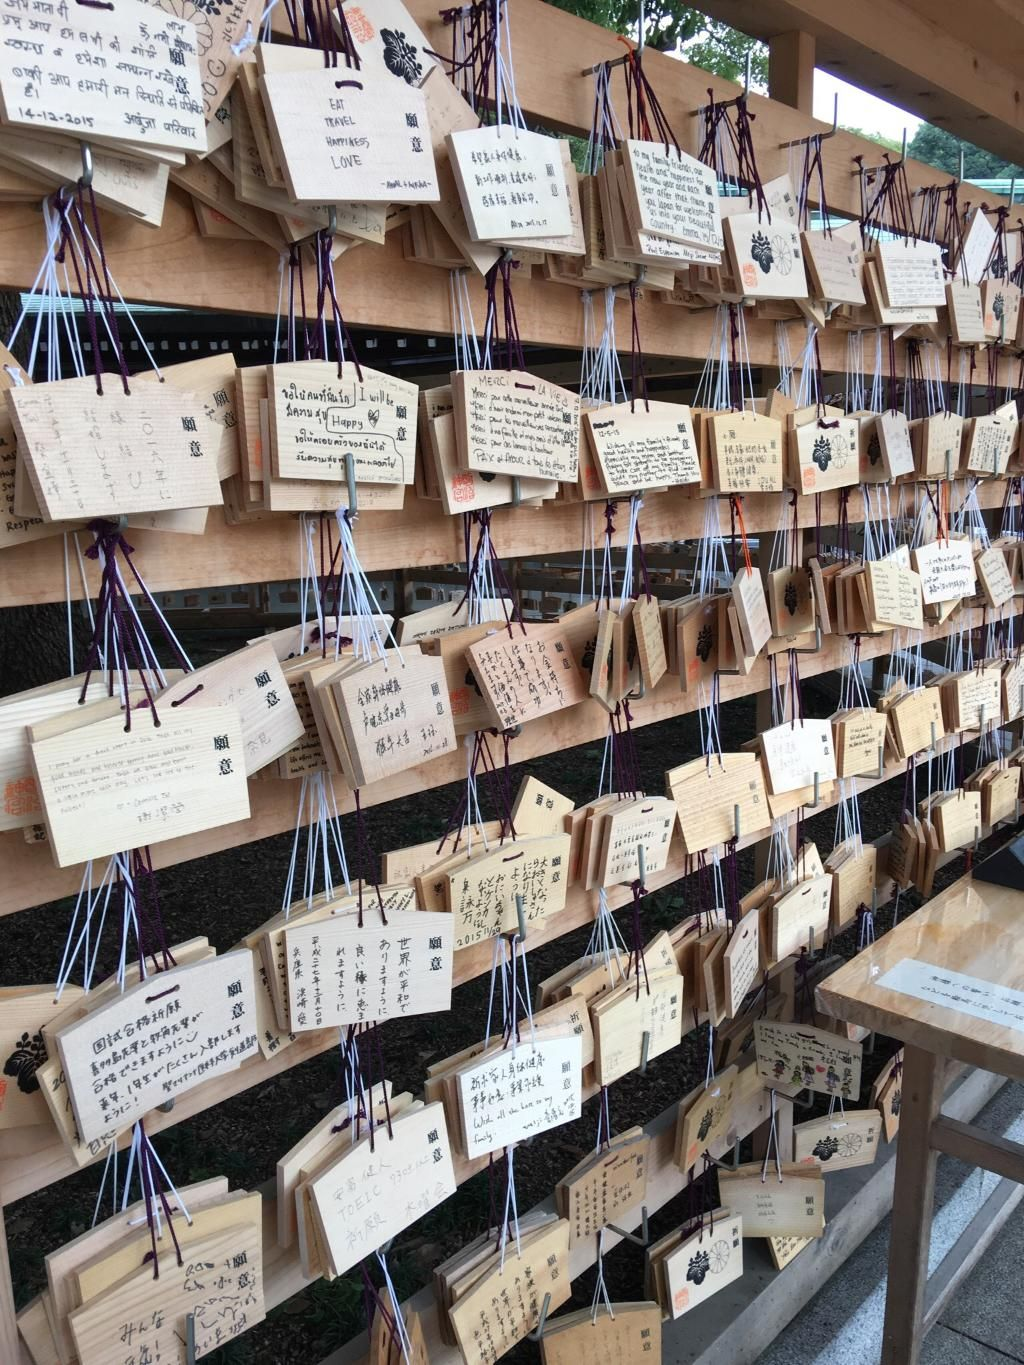 Book your tickets online for Meiji Jingu, Shibuya: See 3,596 reviews, articles, and 3,166 photos of Meiji Jingu, ranked No.1 on TripAdvisor among 139 attractions in Shibuya.